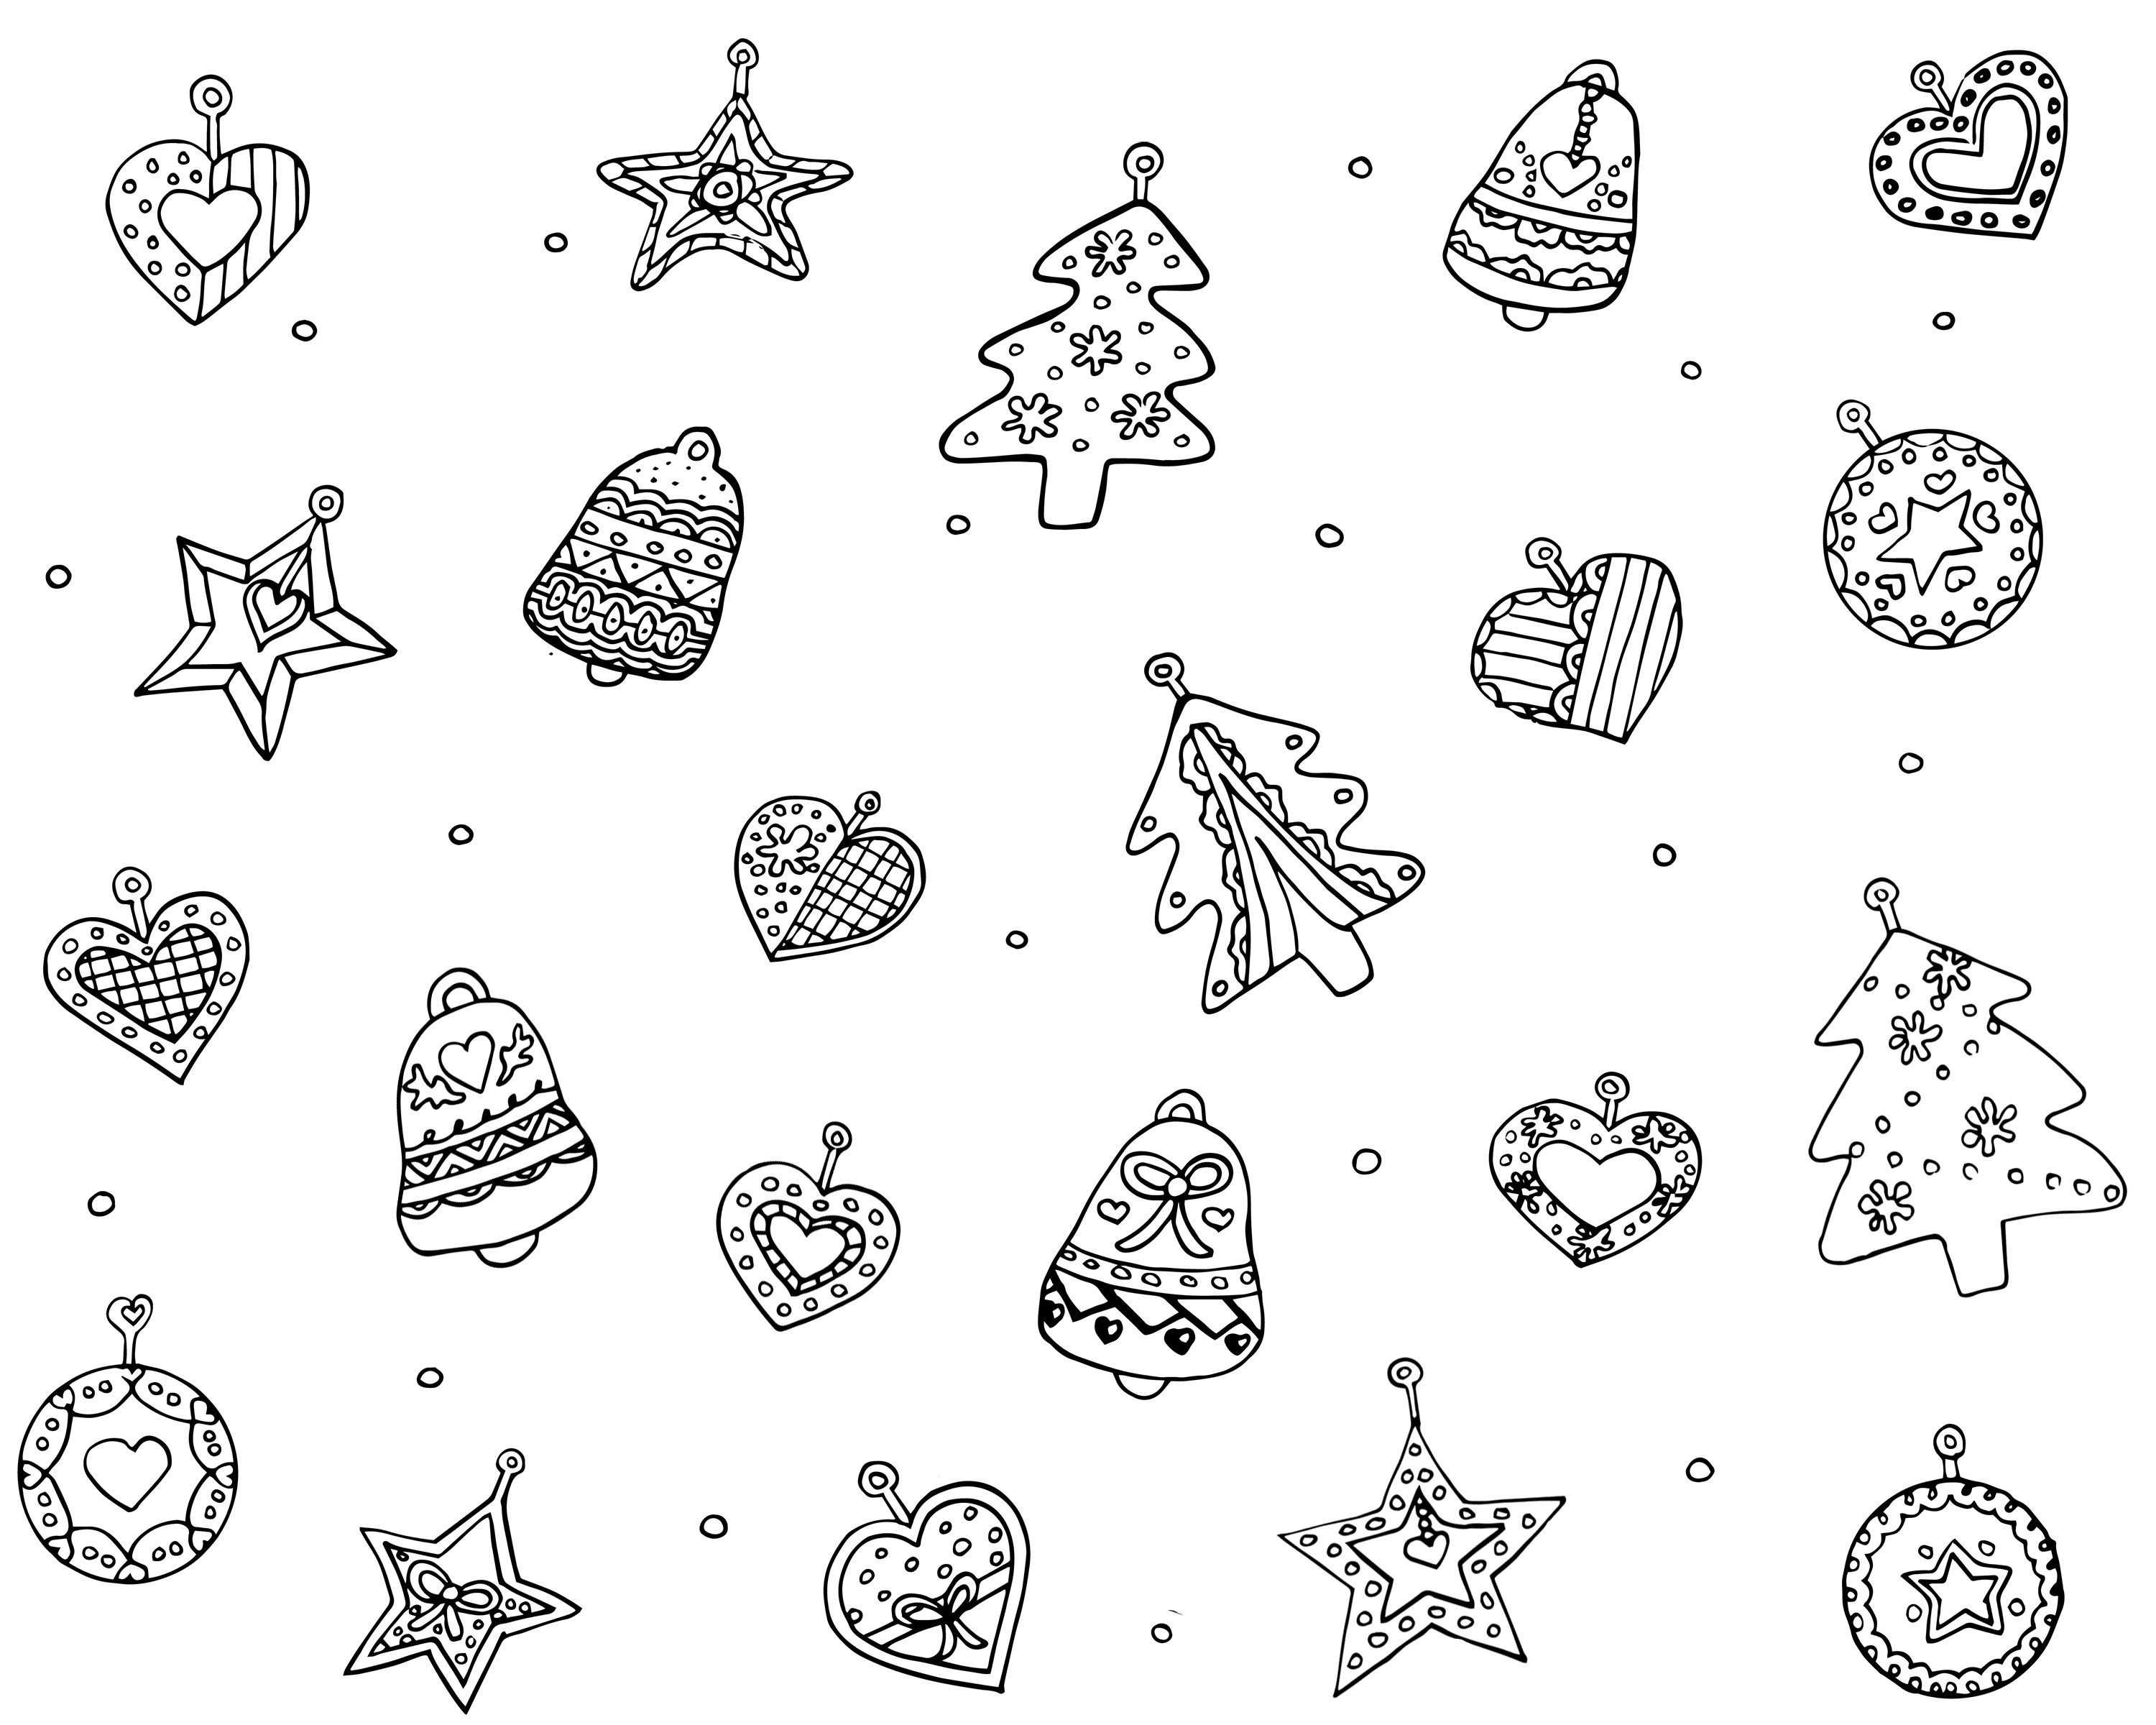 Christmas Ornament Coloring Sheet With Tree Decorations Sheets New Free